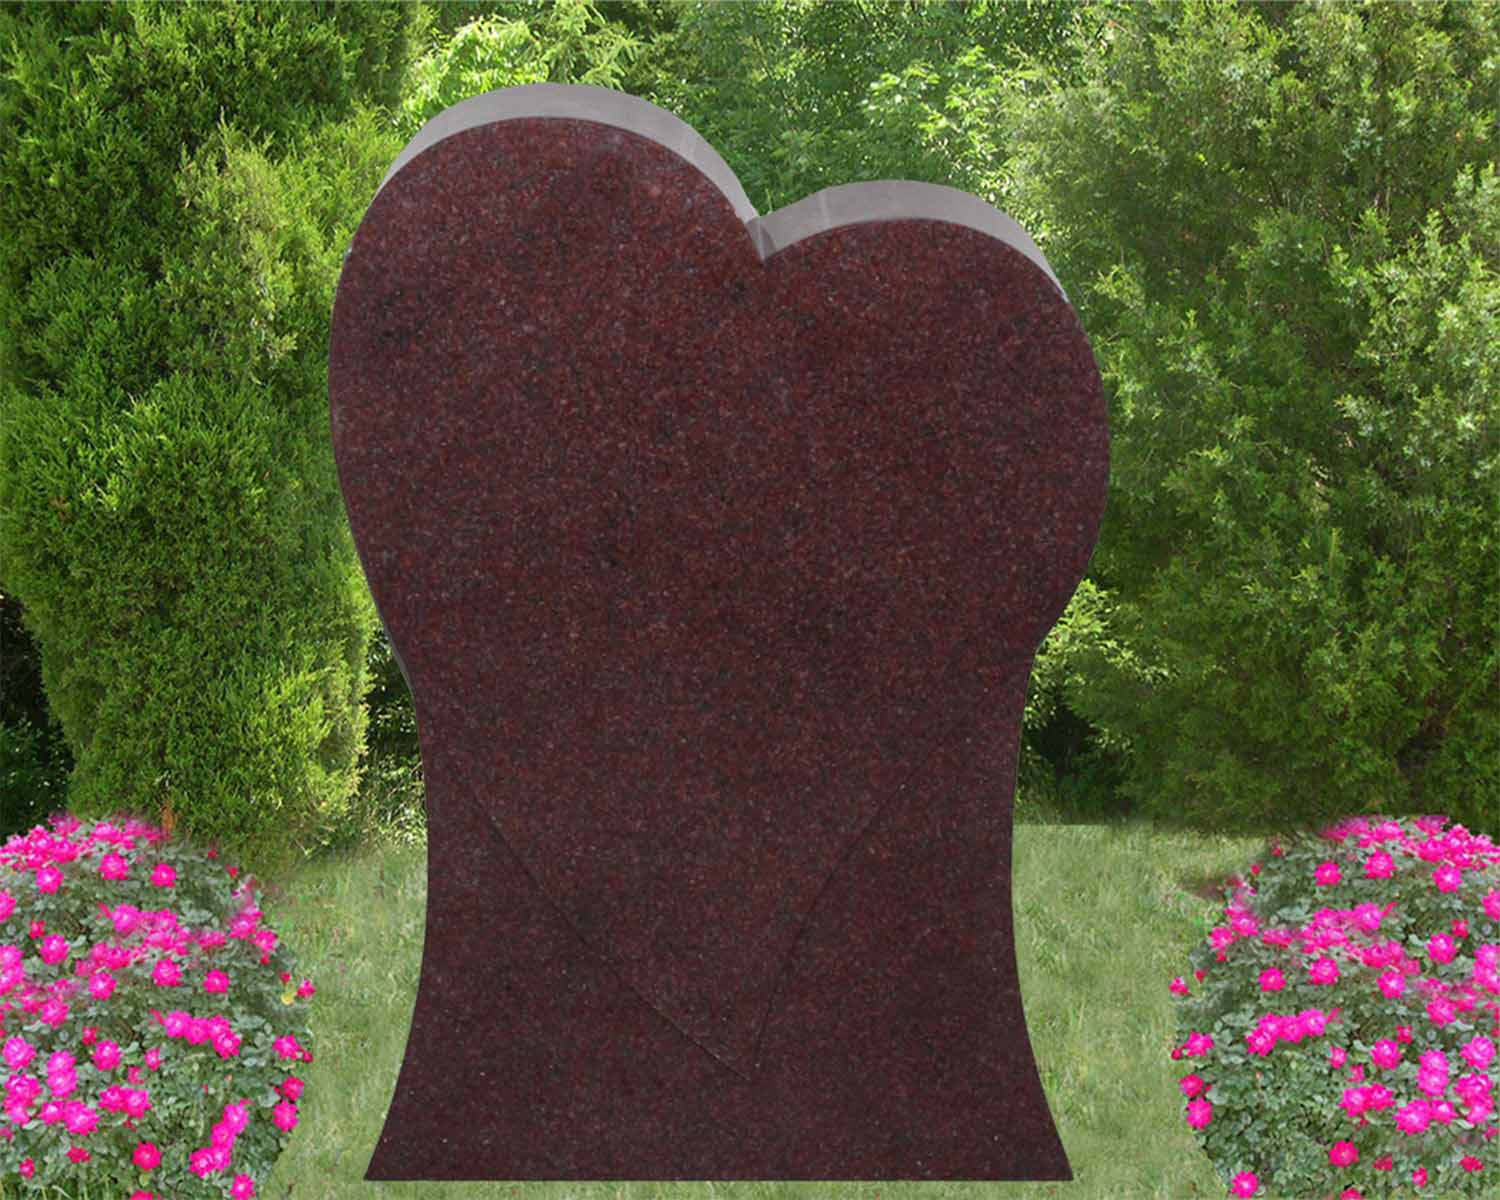 EG-13-83-387-63 / India Red / Tilted Raised Single Heart